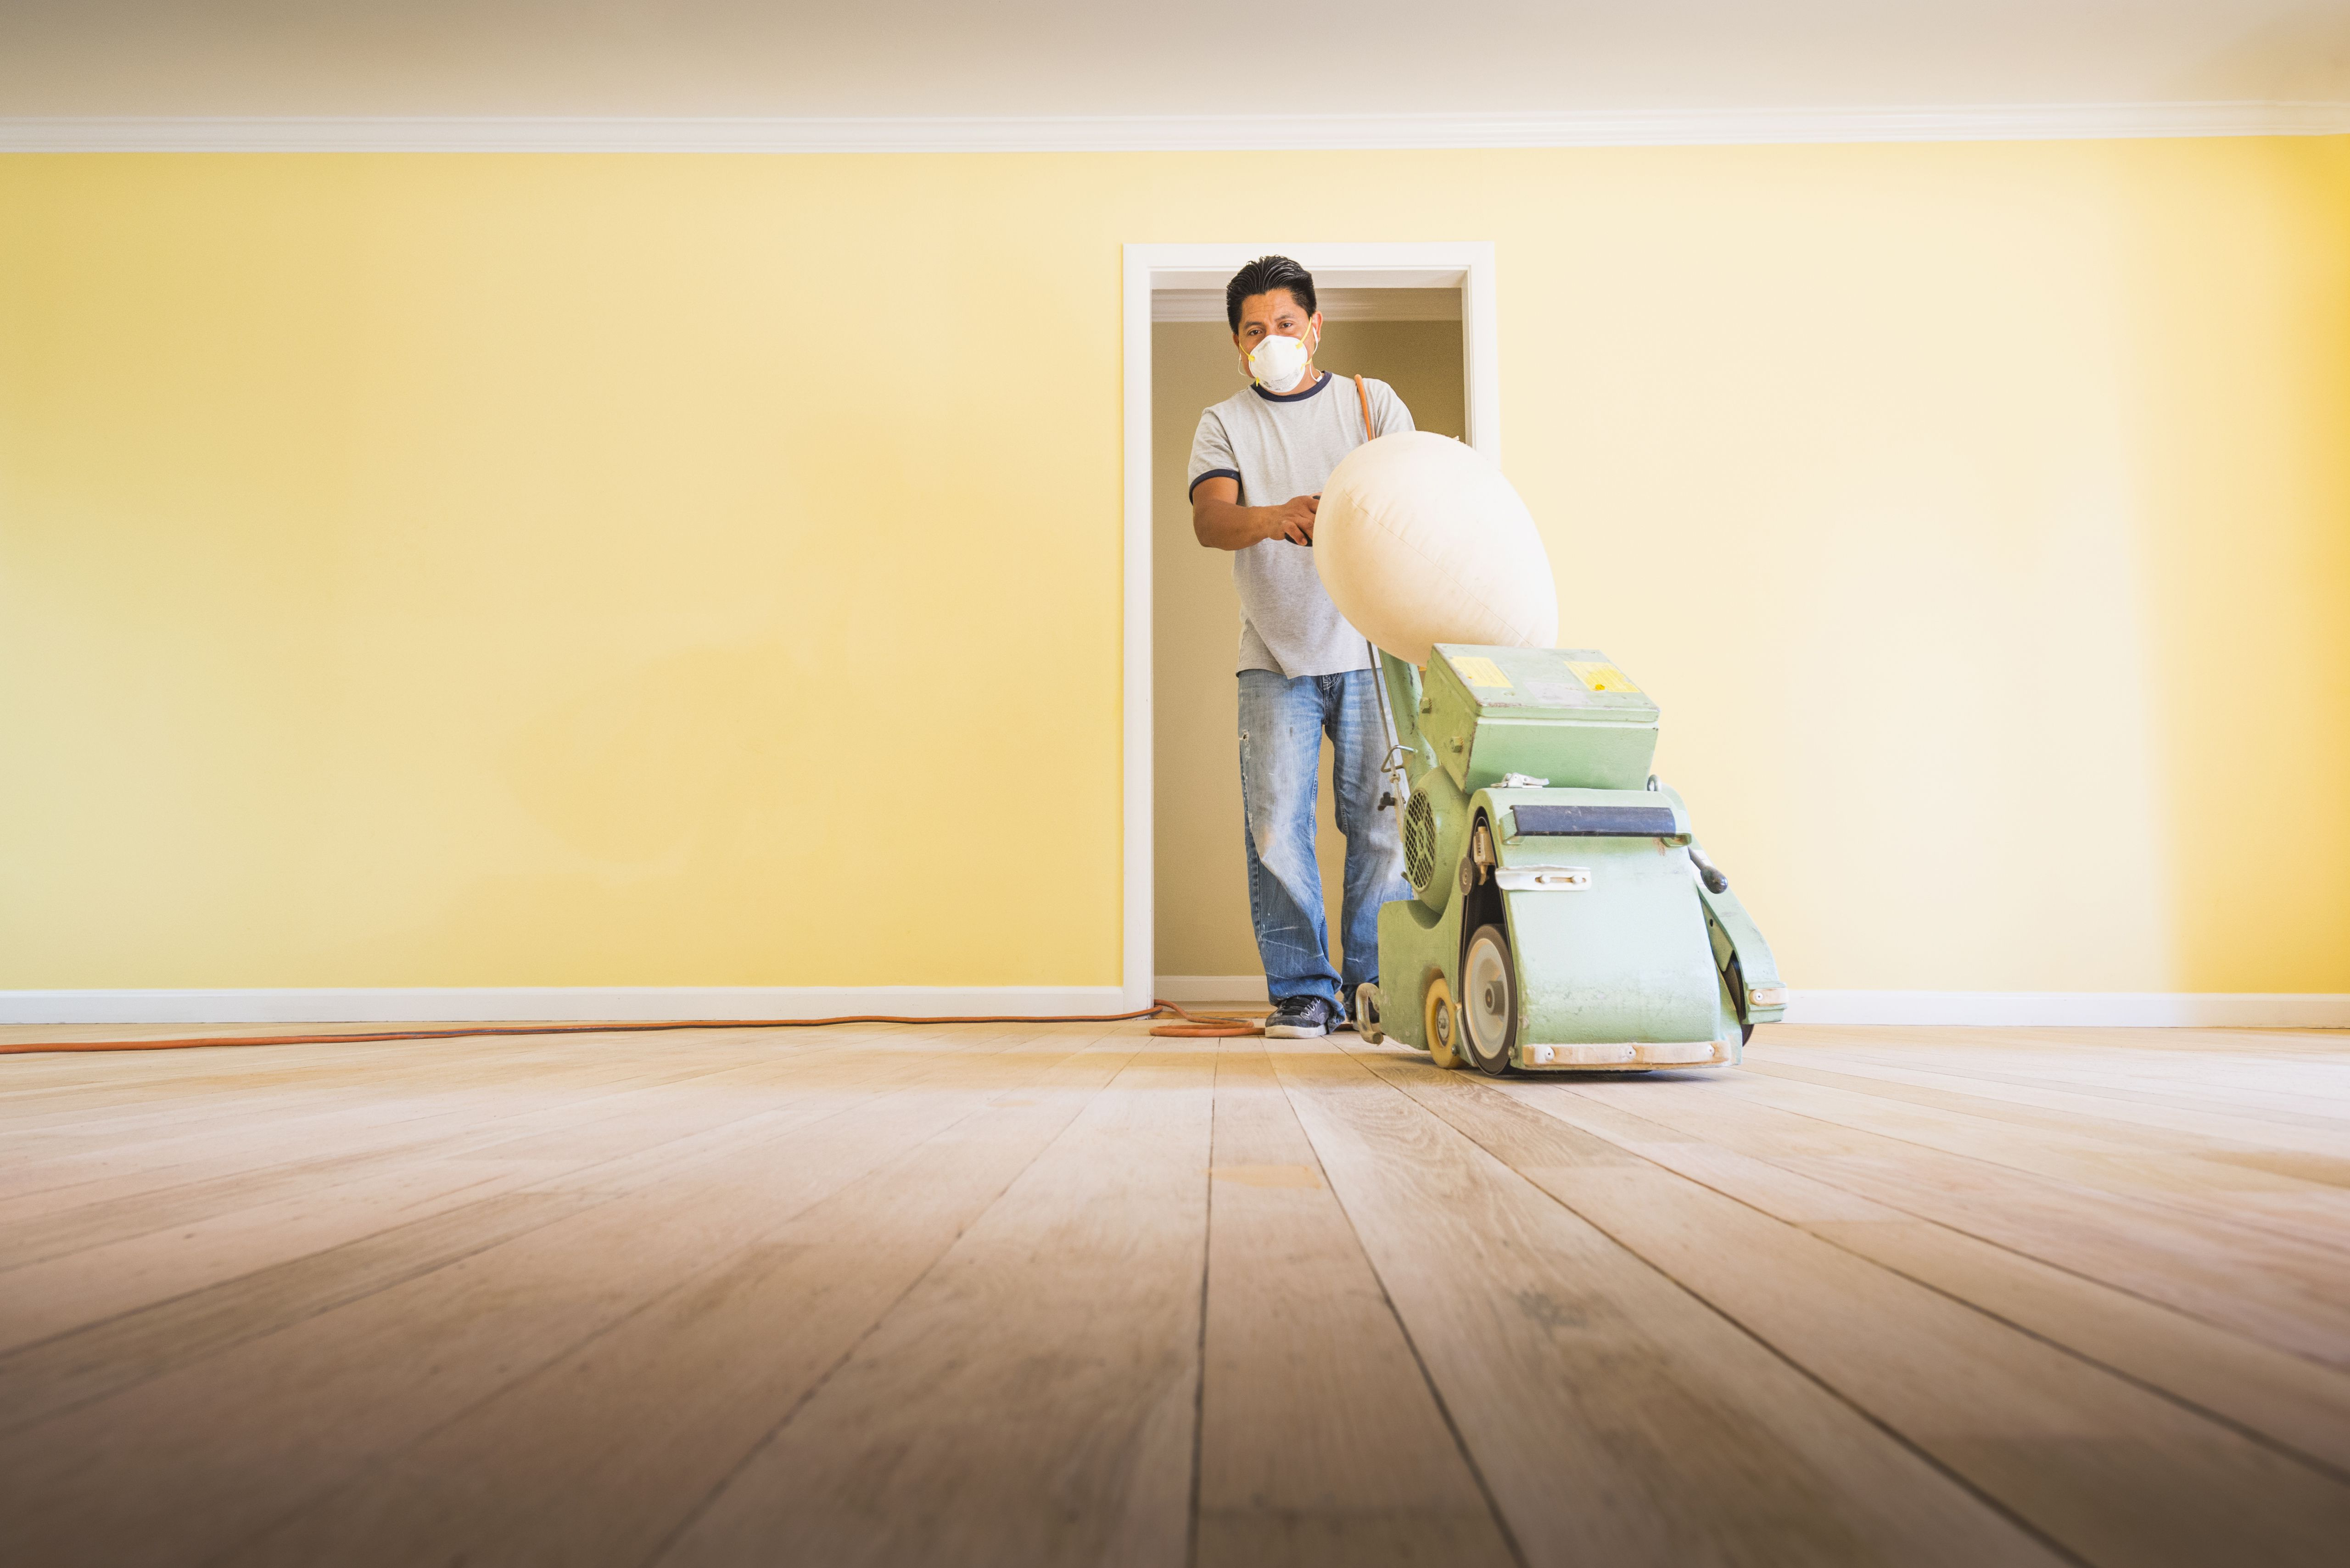 how to restore hardwood floors without refinishing of should you paint walls or refinish floors first inside floorsandingafterpainting 5a8f08dfae9ab80037d9d878